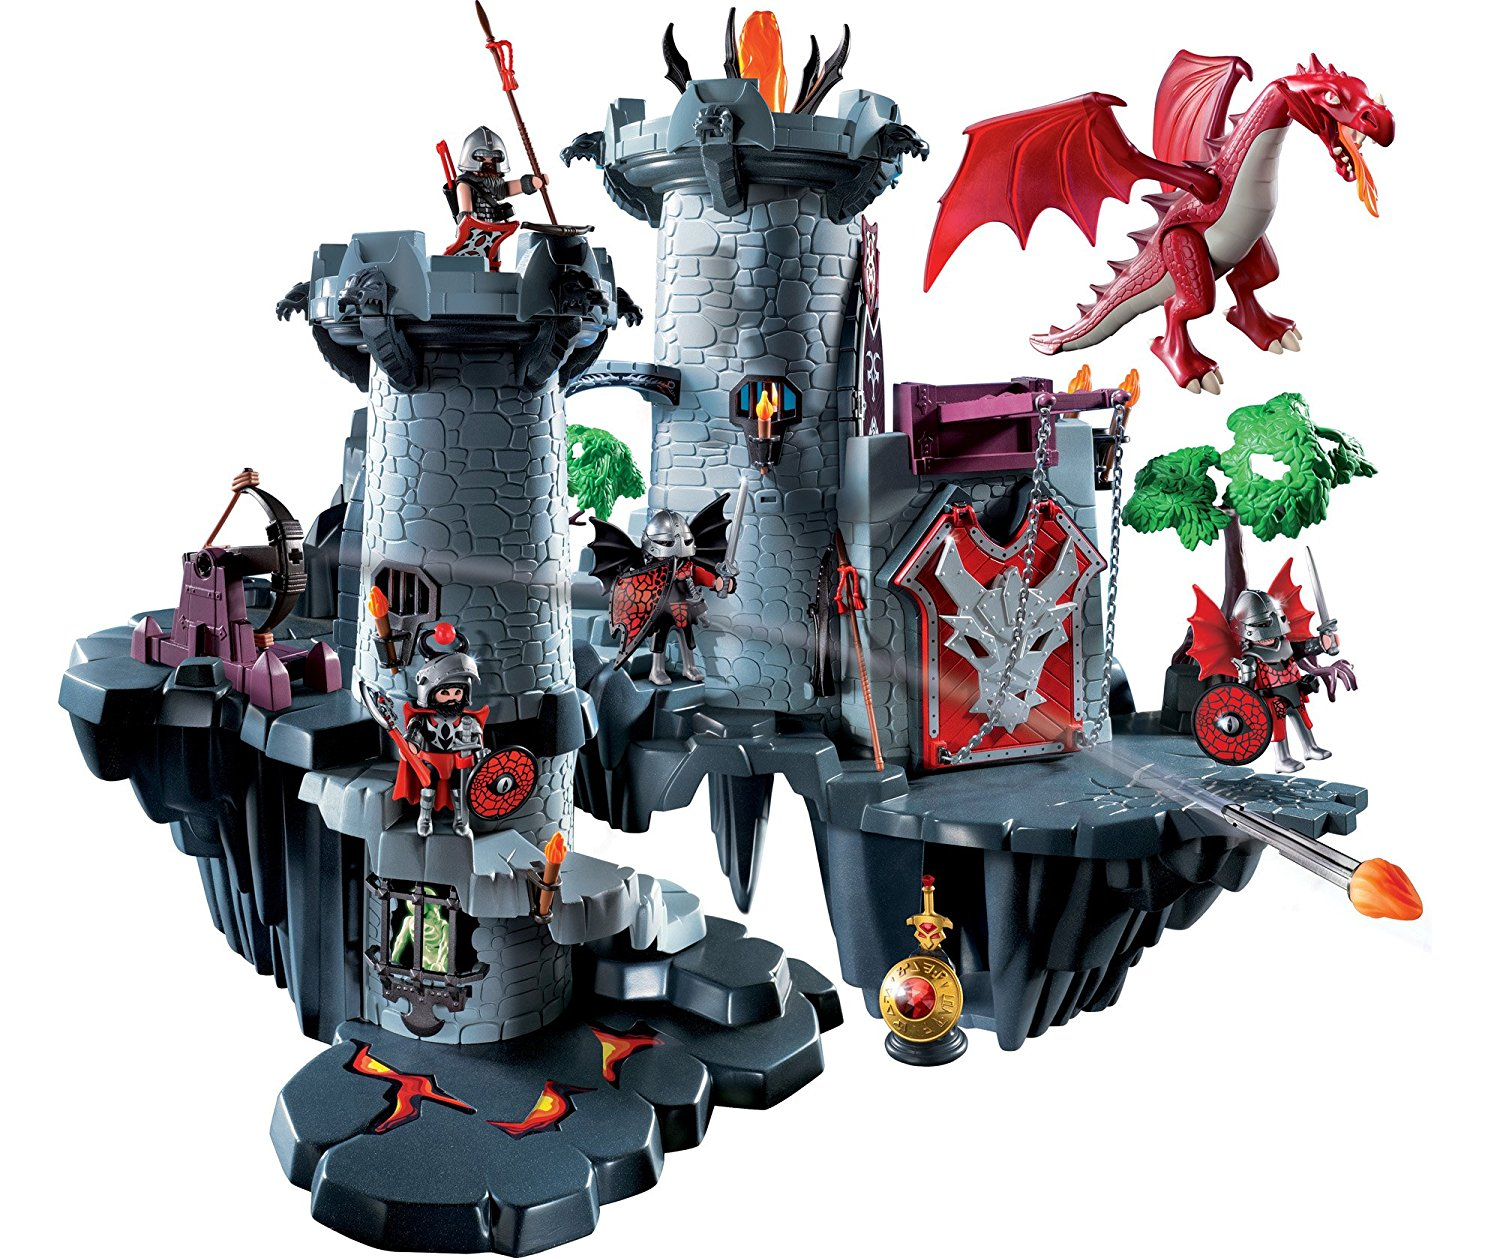 Citadelle des chevaliers Dragon Playmobil 4835